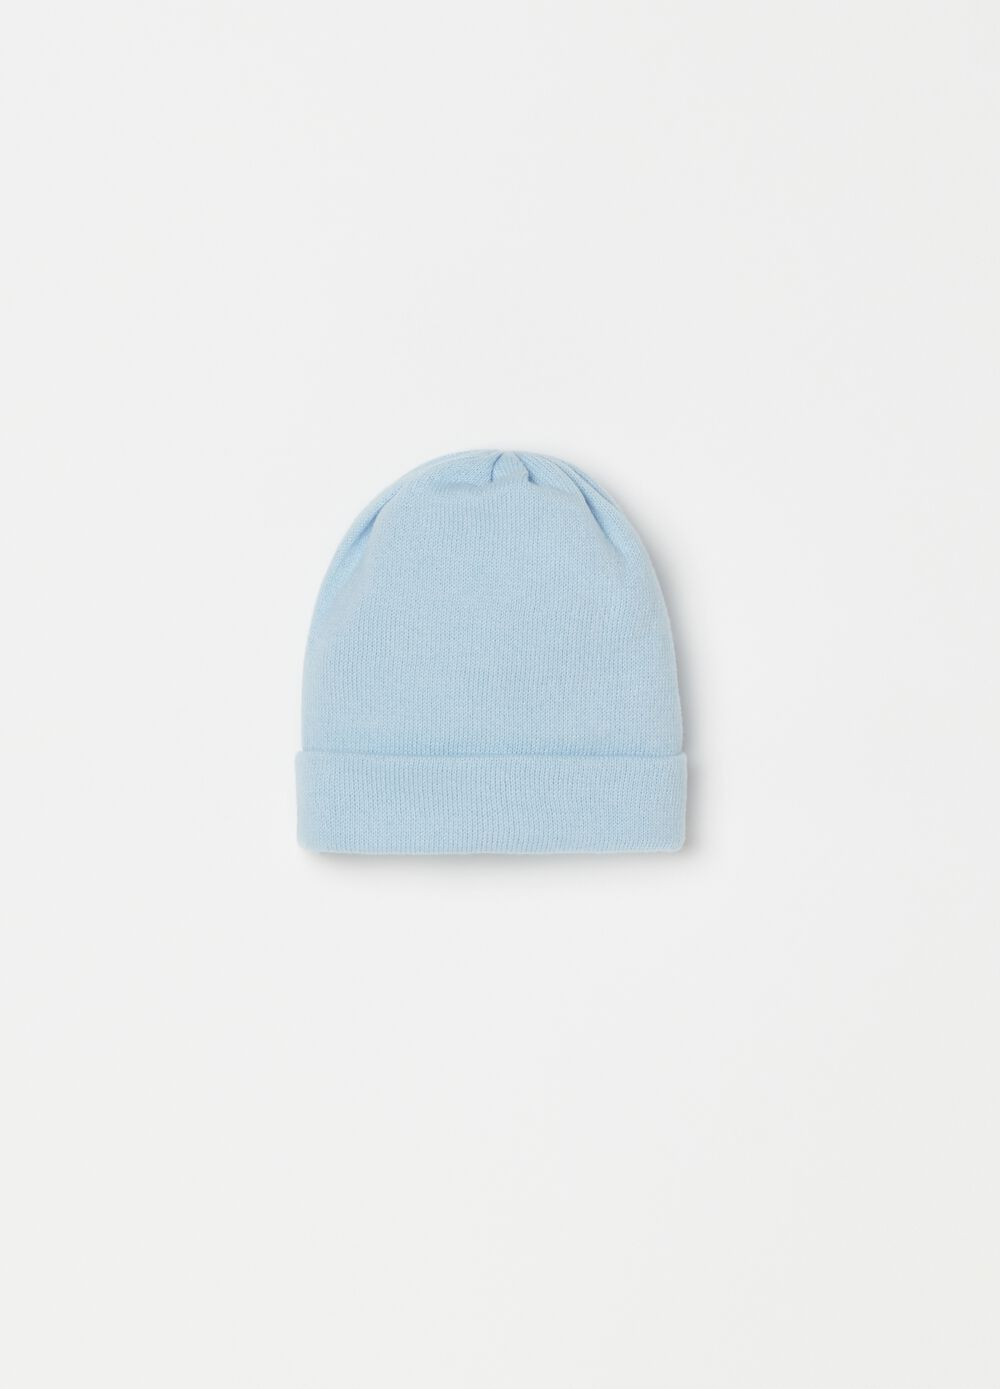 Cotton hat with folded brim